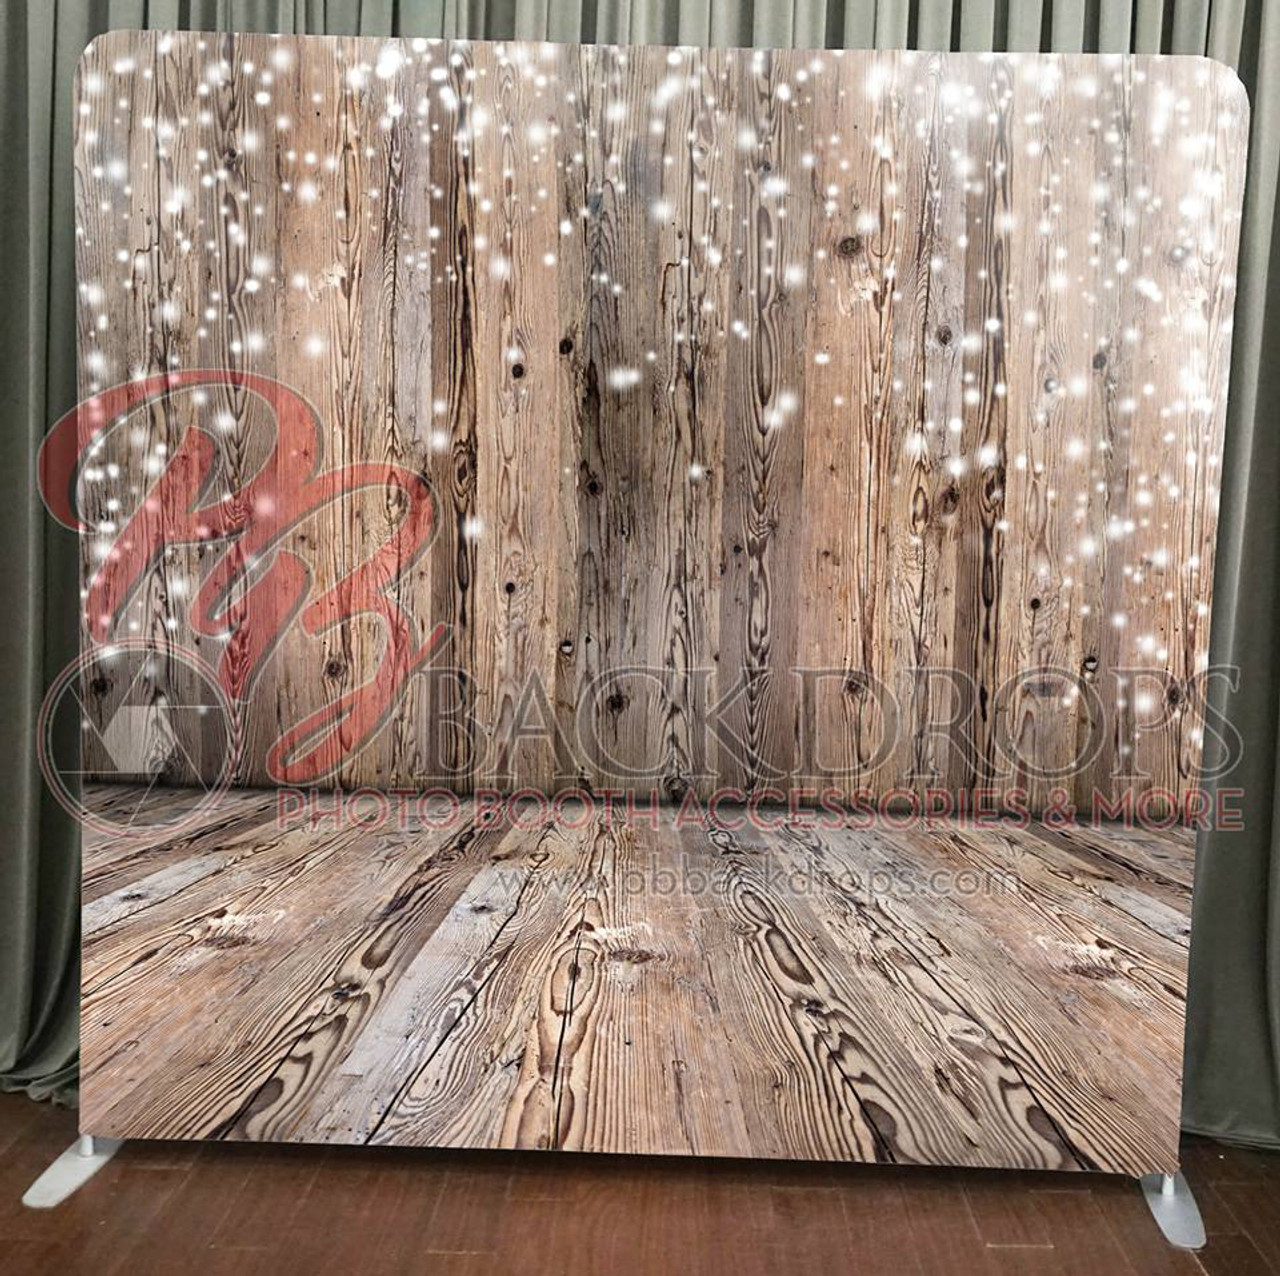 single sided pillow cover backdrop wood wall floor holiday pb